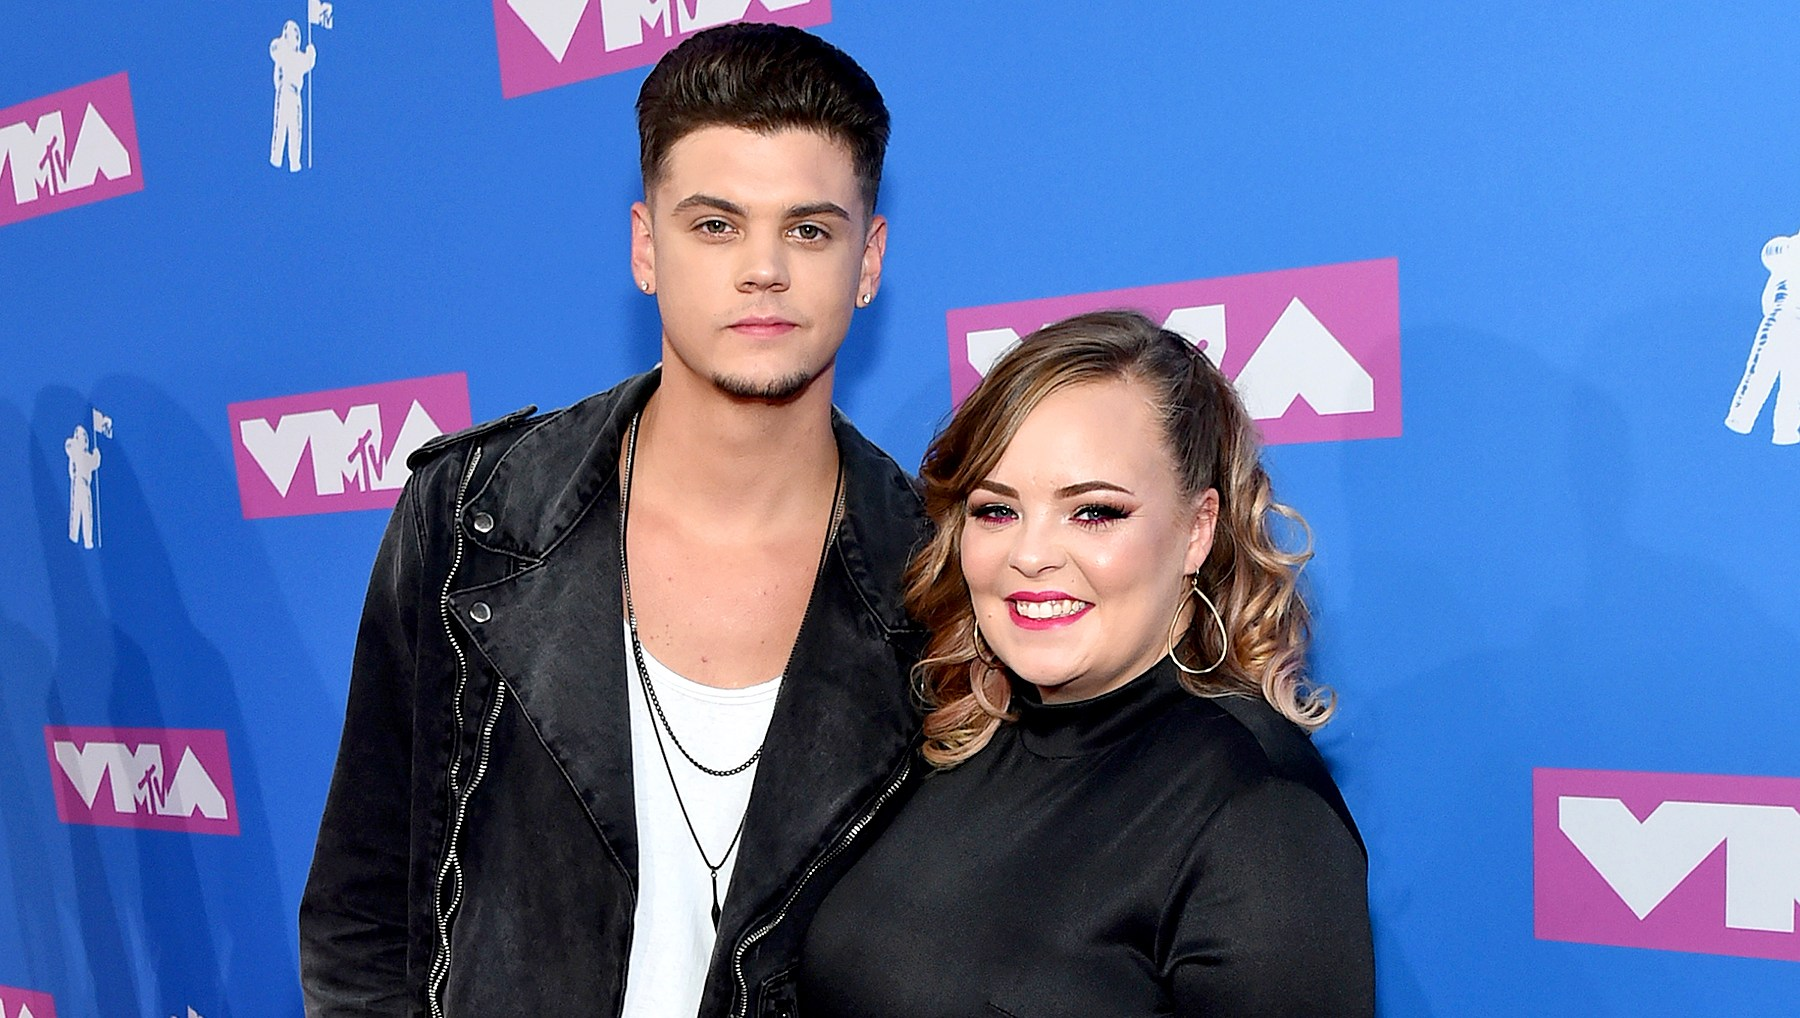 Catelynn-Lowell-and-Tyler-Baltierra-gender-reveal